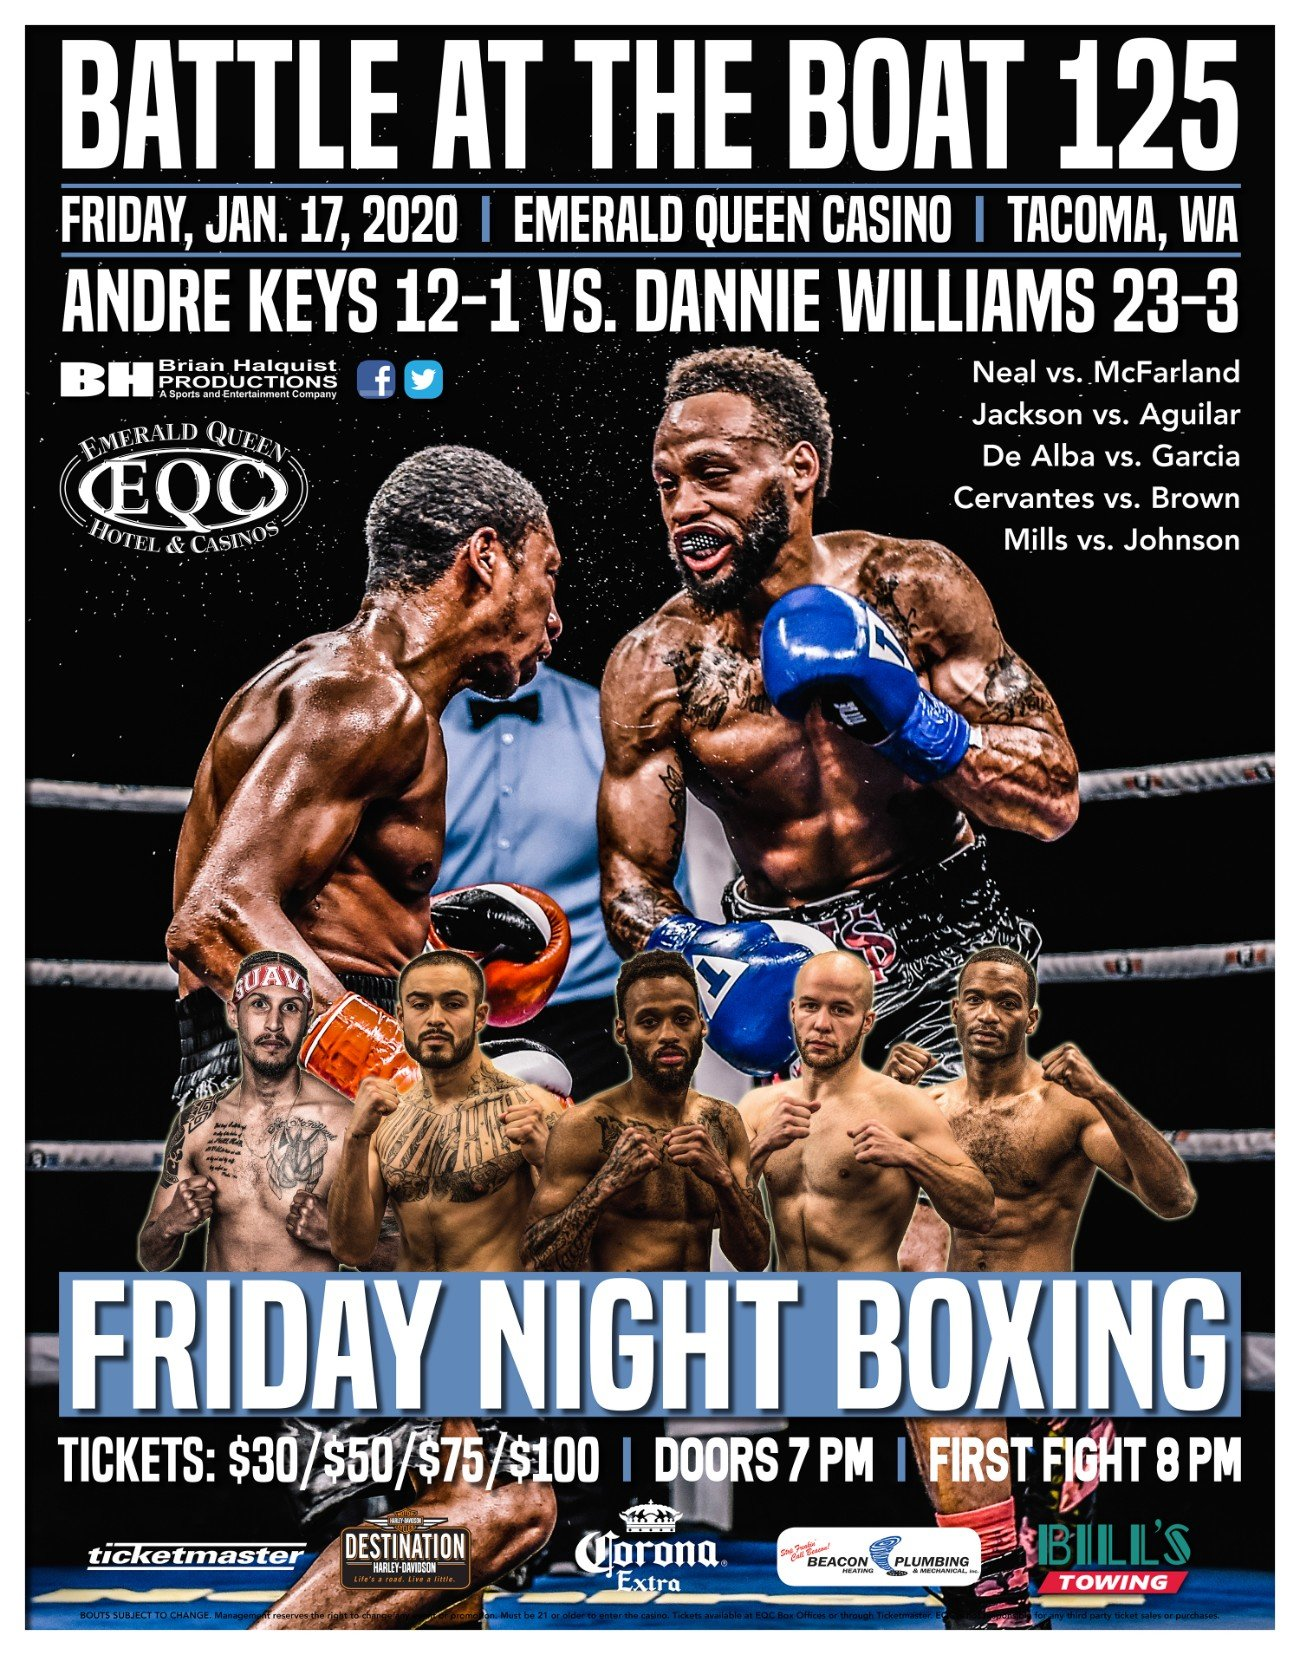 Andre Keys, Dannie Williams - Brian Halquist Productions will kick of its 2020 season with the 125th installment of the Battle at the Boat boxing series on Friday at the Emerald Queen Casino in Tacoma, Wash.